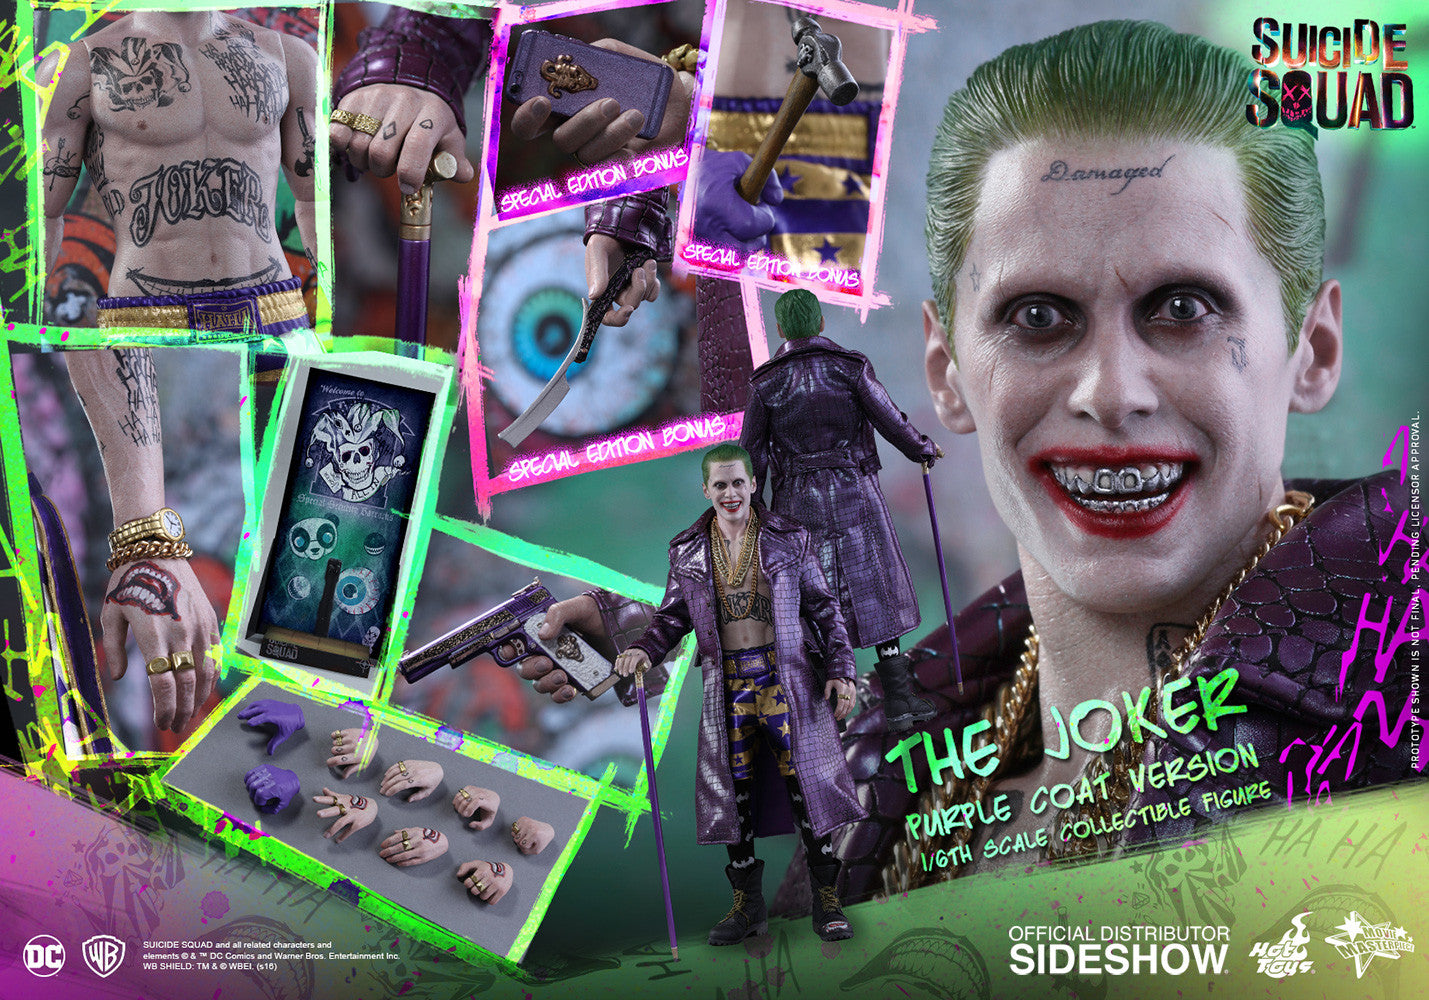 Hot Toys The Joker (Purple Coat Version) EXCLUSIVE VERSION